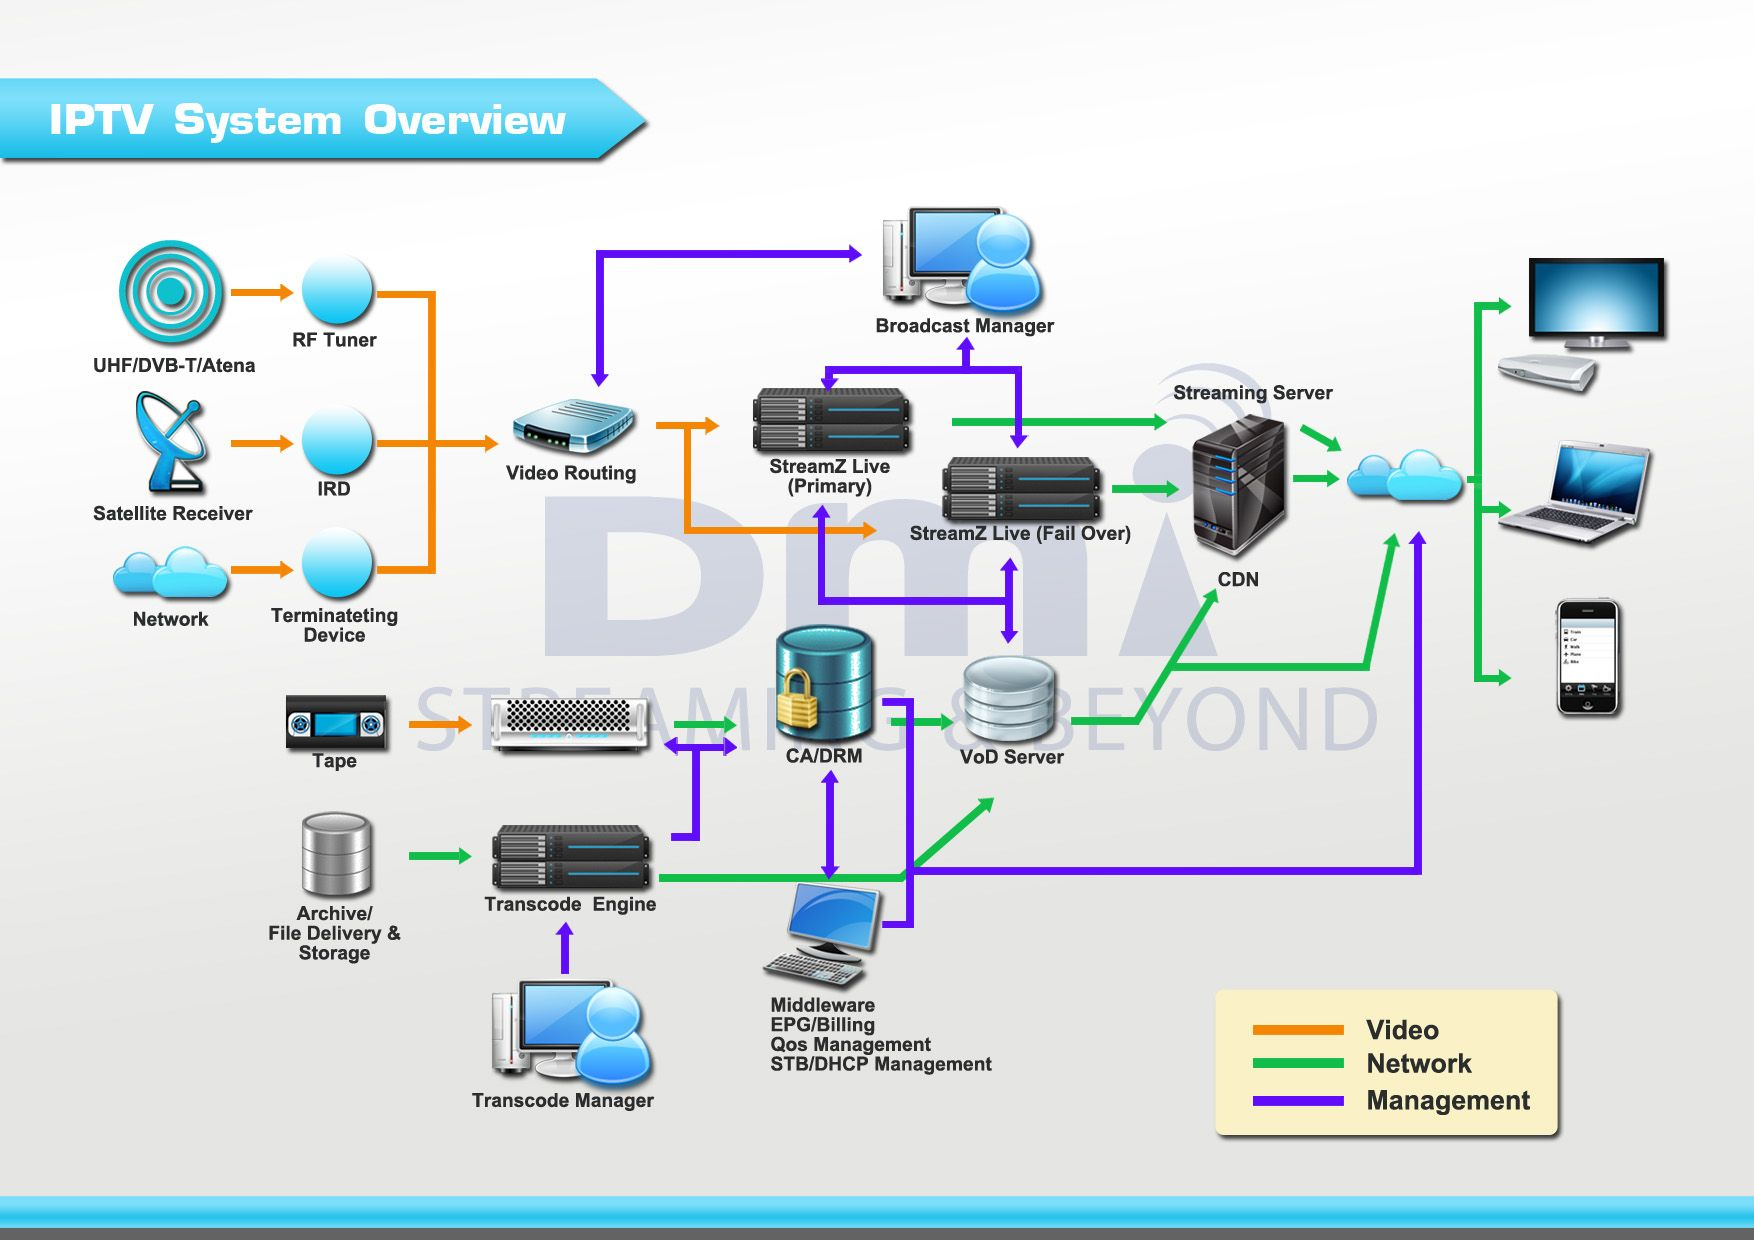 Enhance Your Iptv Offer   Manage It Smoothly And Securely Serve The Best Of Breed Contents To